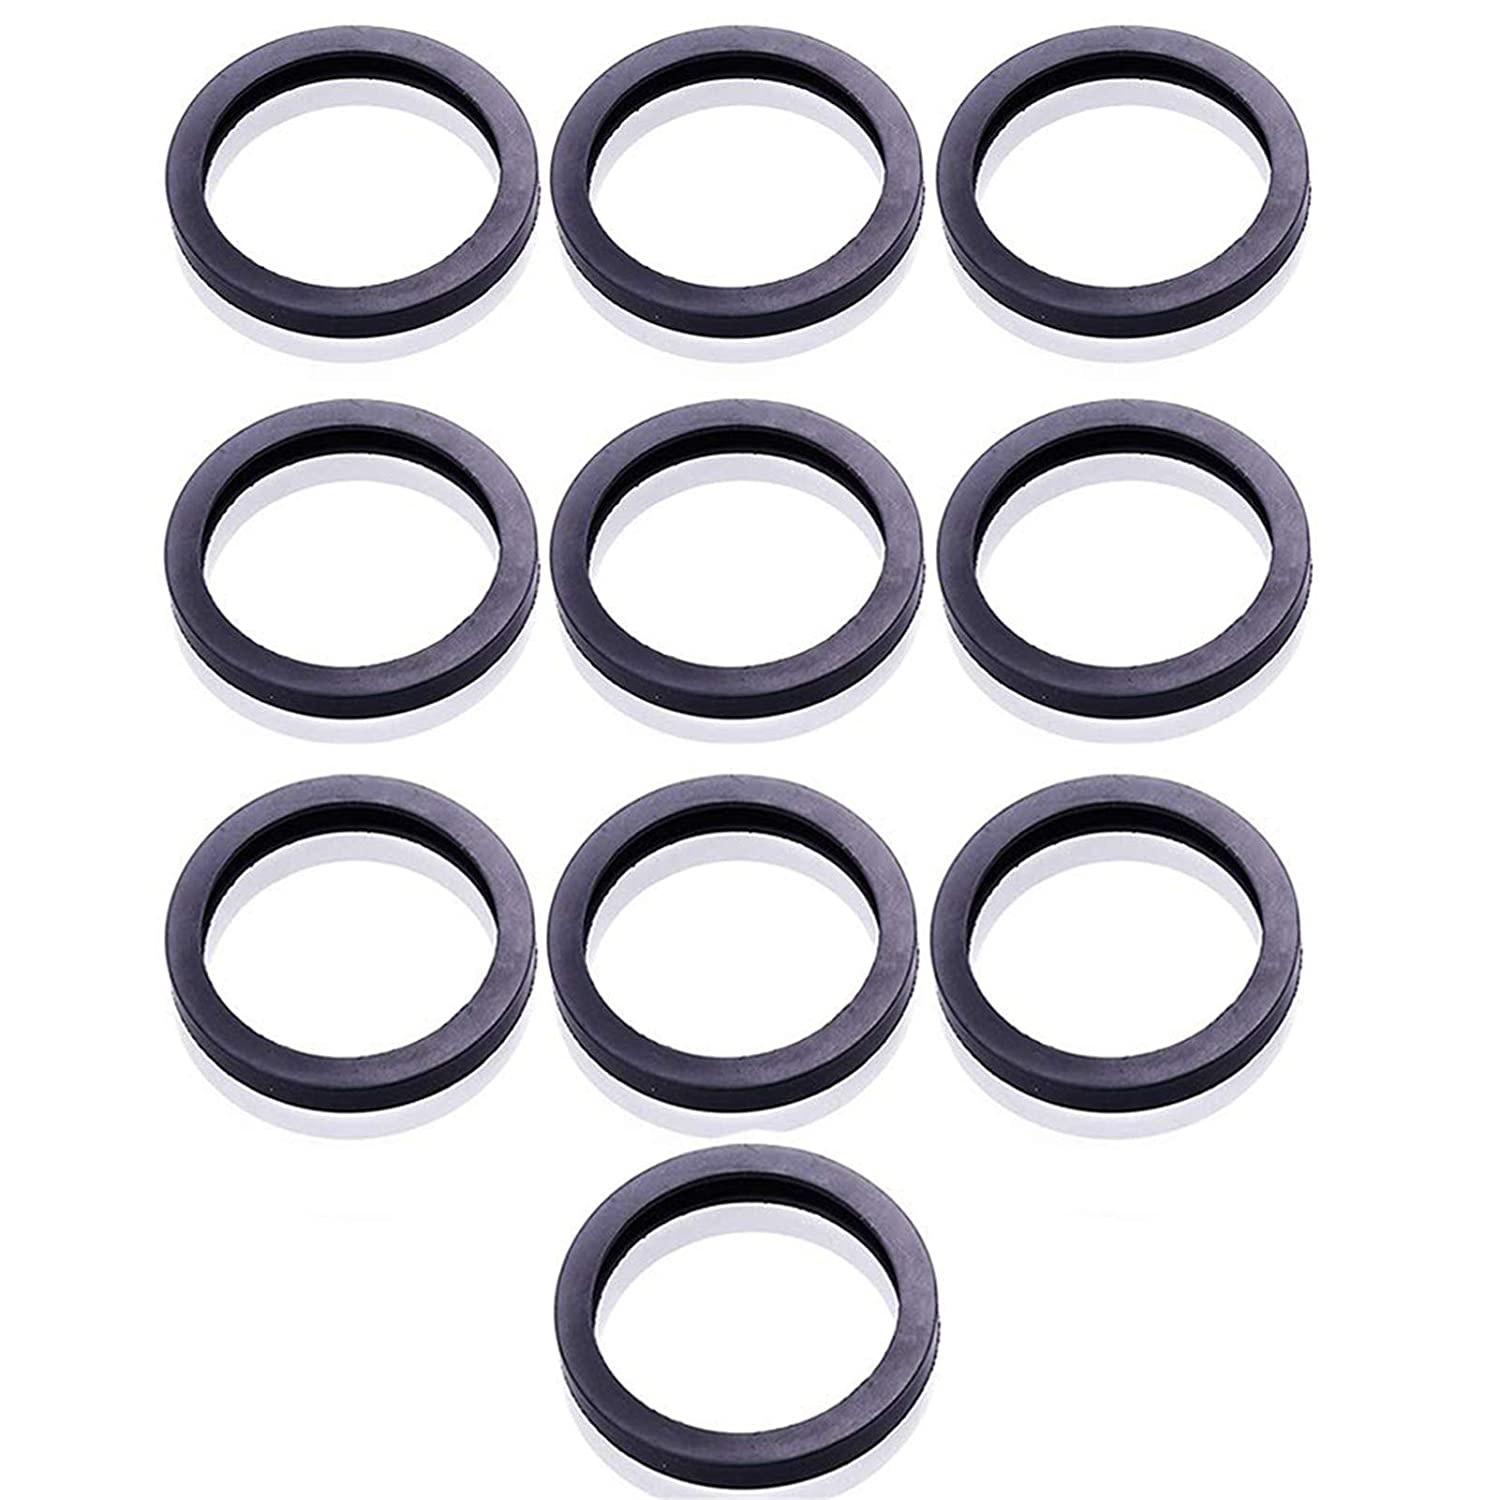 ORANDESIGNE 10Pack Gas Can New arrival Spout Max 82% OFF Ring Replacement O Gasket Unive